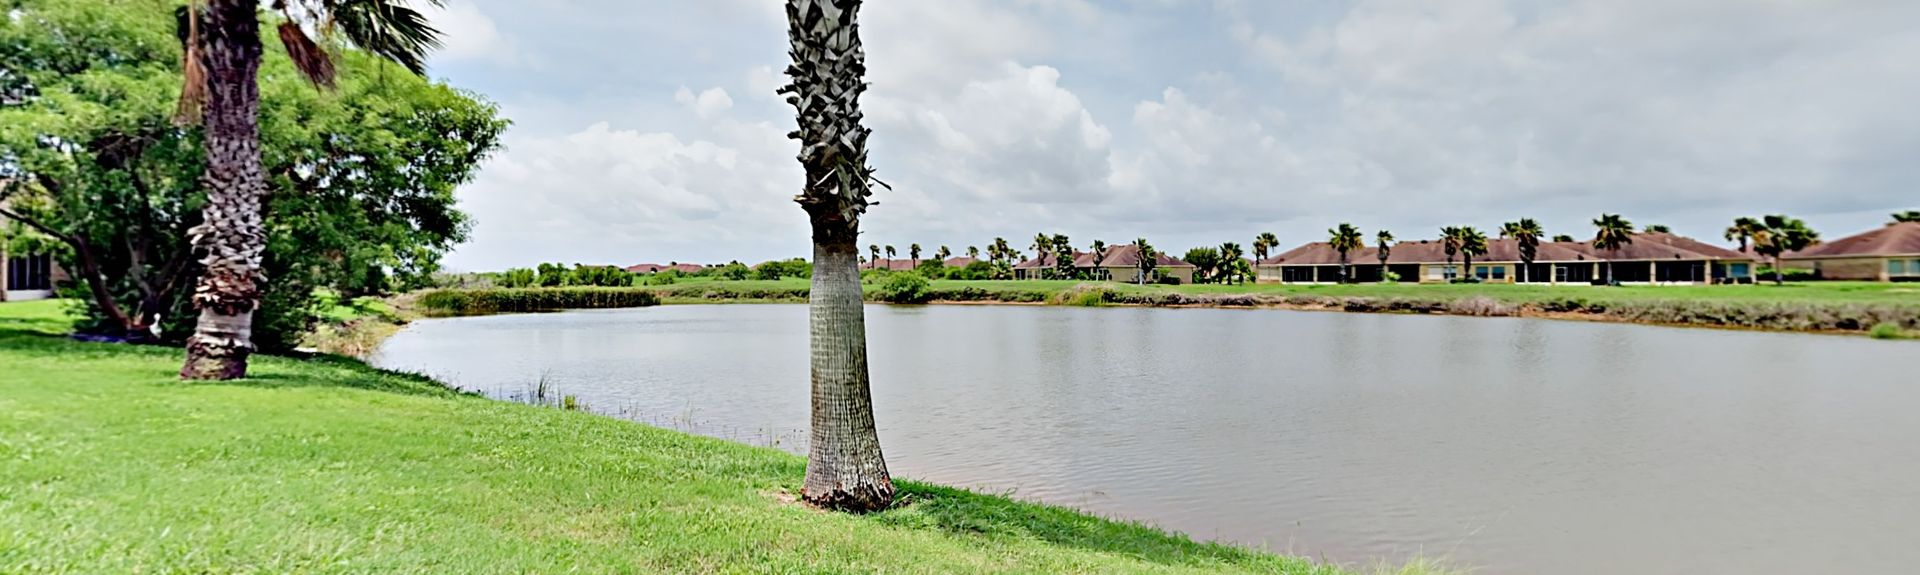 South Padre Island Golf Club (Laguna Vista, Texas, United States)